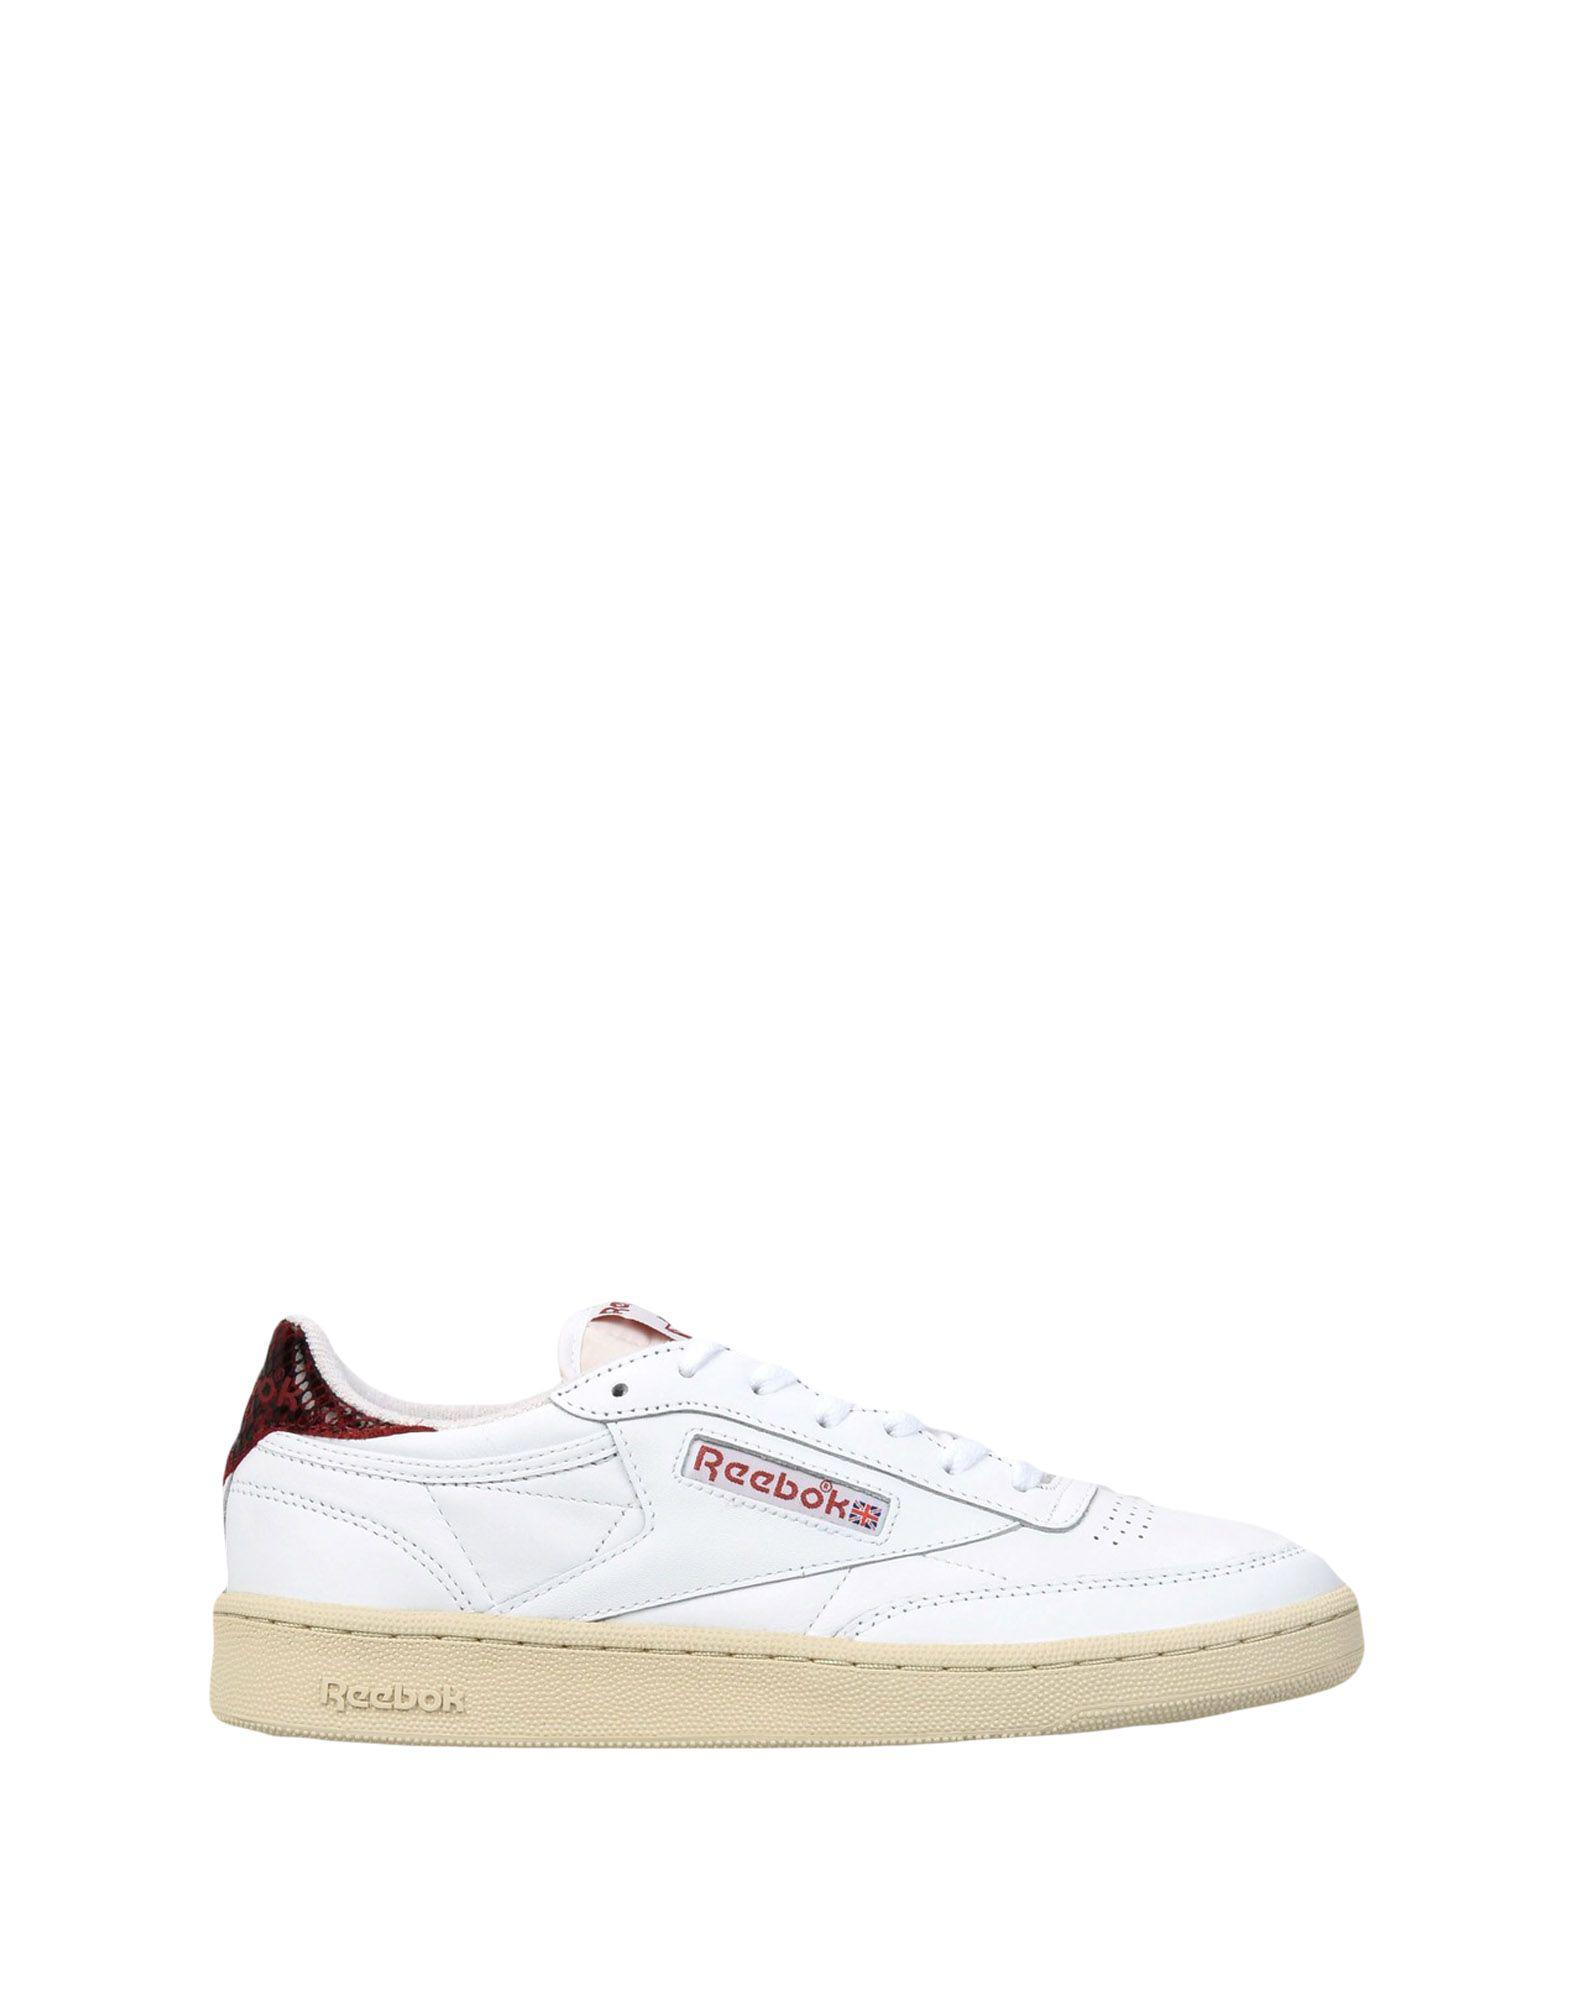 Reebok Leather Low-tops & Sneakers in White